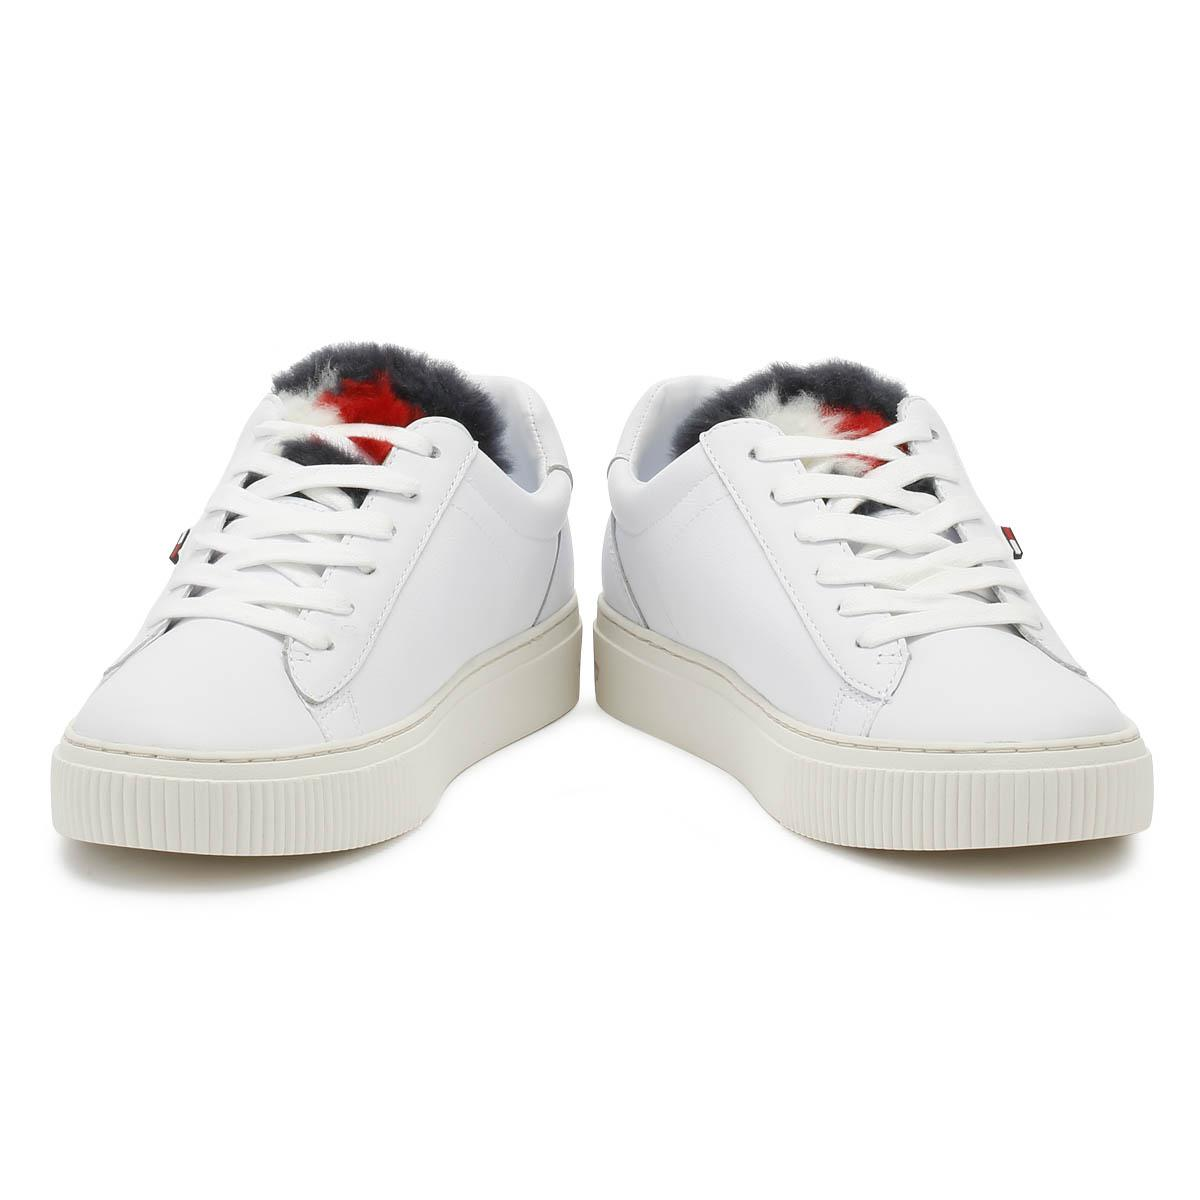 b8c7274e0 Lyst - Tommy Hilfiger Womens White Funny Fur Star Trainers Women s Shoes ( trainers) In Multicolour in White